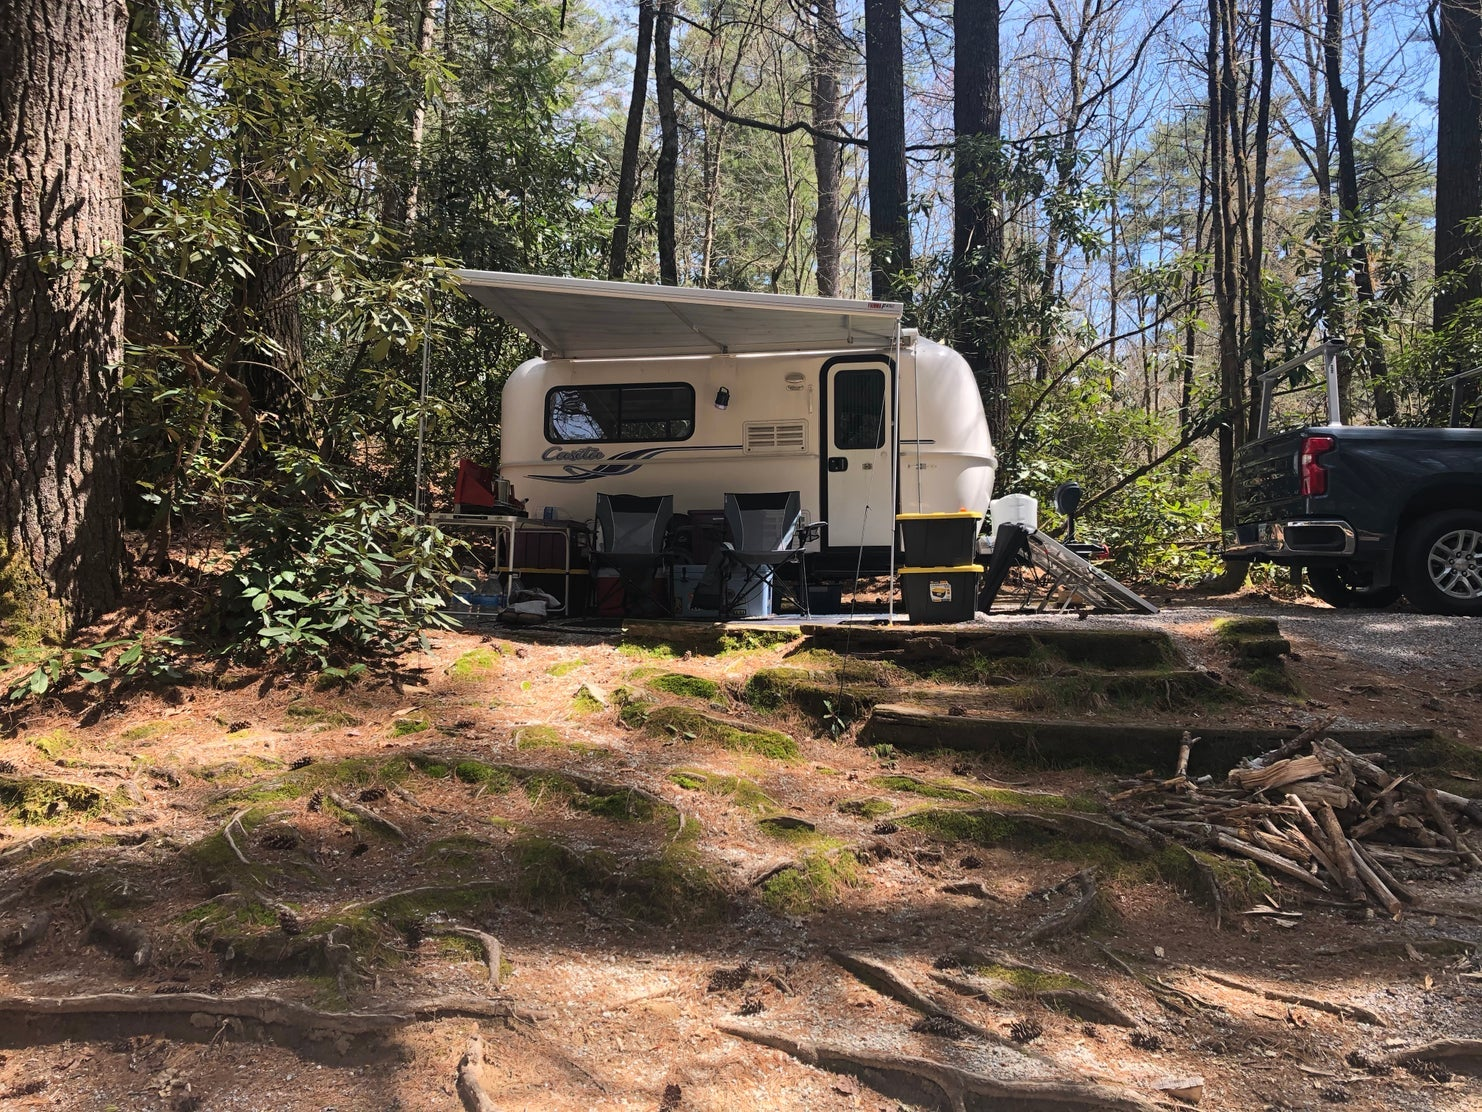 trailer parked in forested campspot